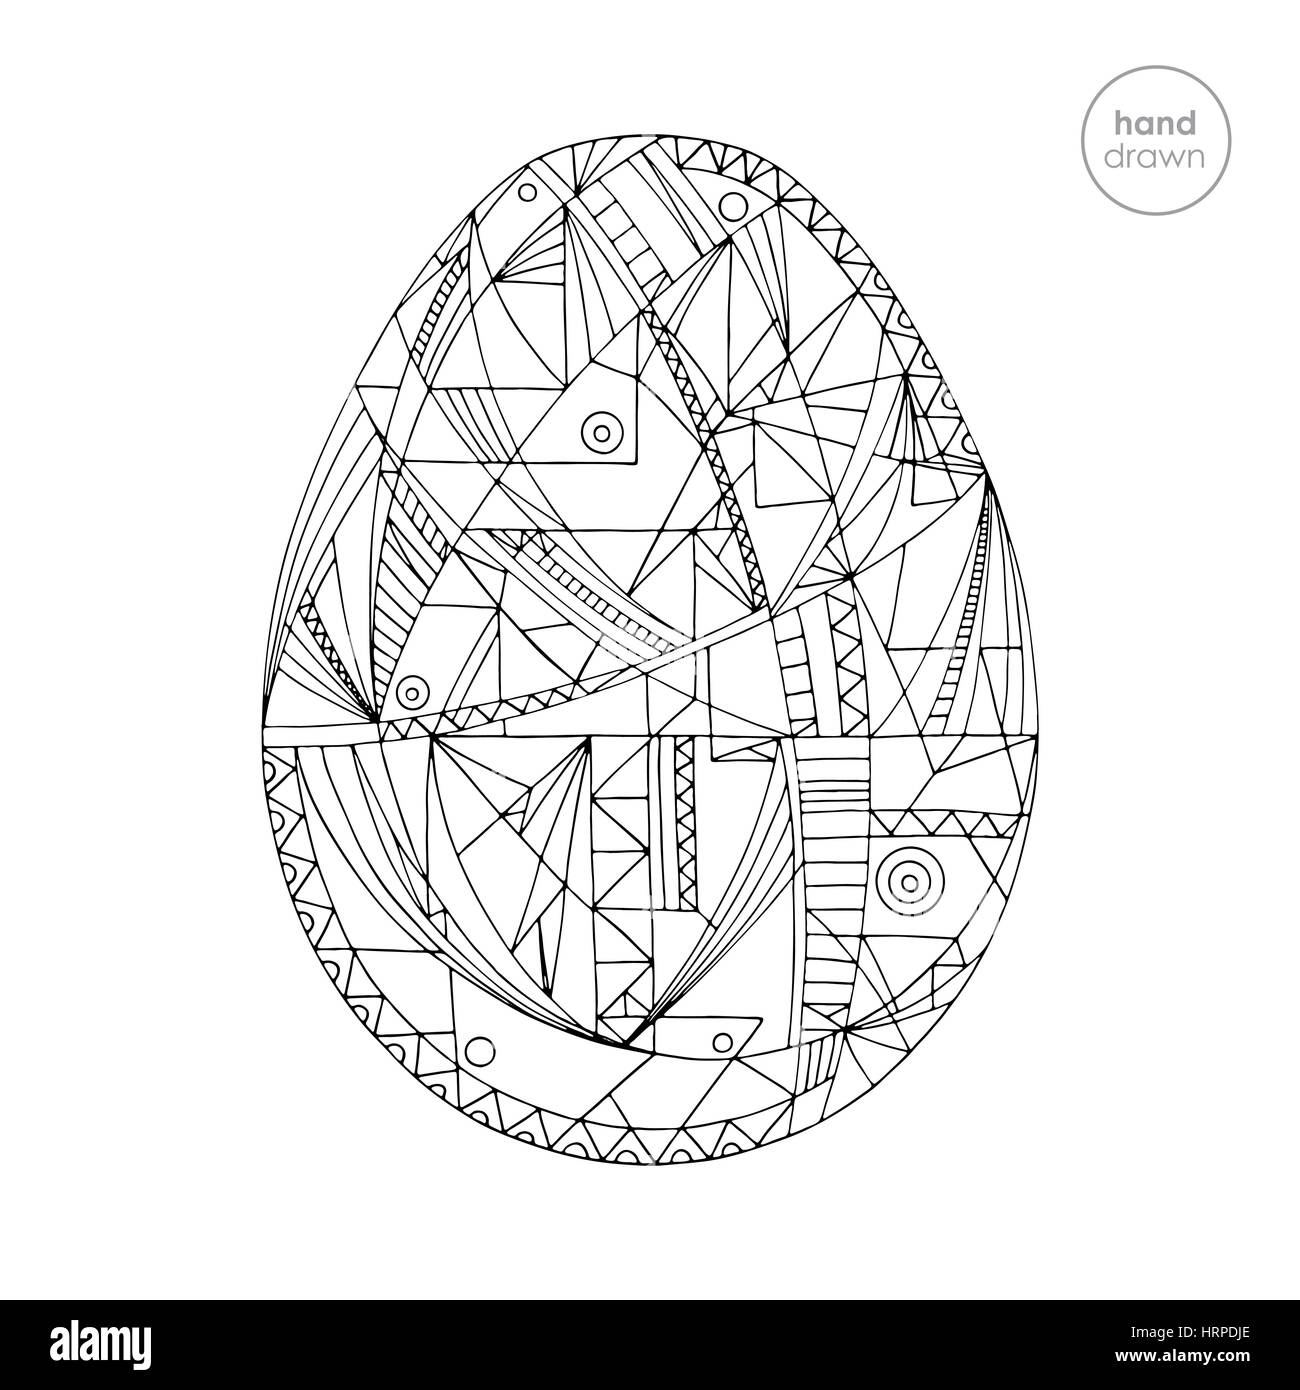 Easter Egg Vector Illustration Hand Drawn Abstract Holidays Design Stock Vector Image Art Alamy